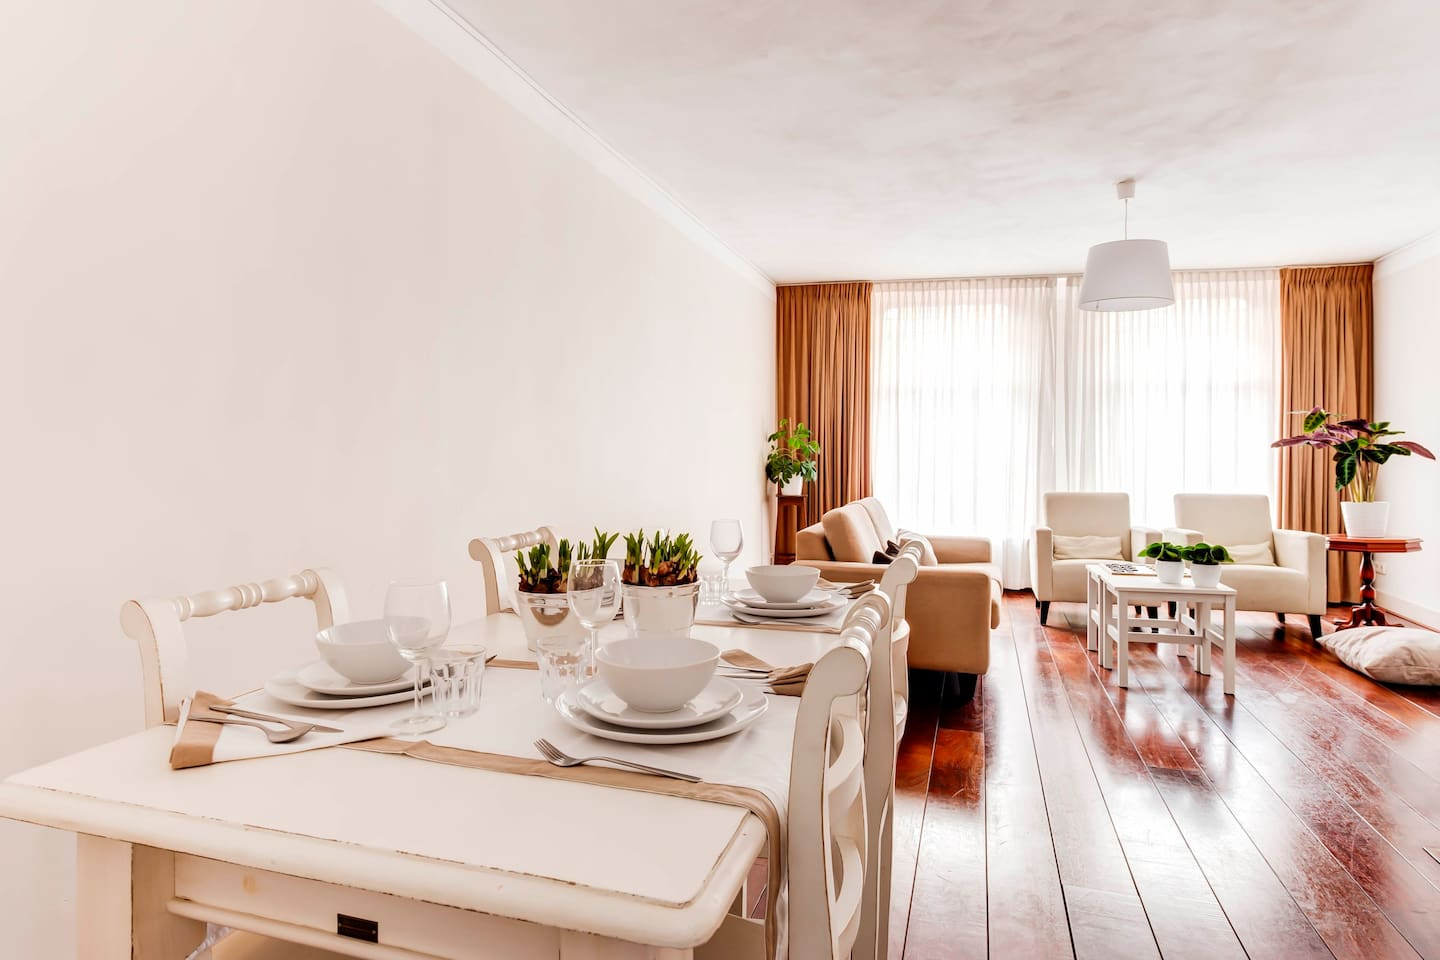 Dining table for four and comfortable living room.